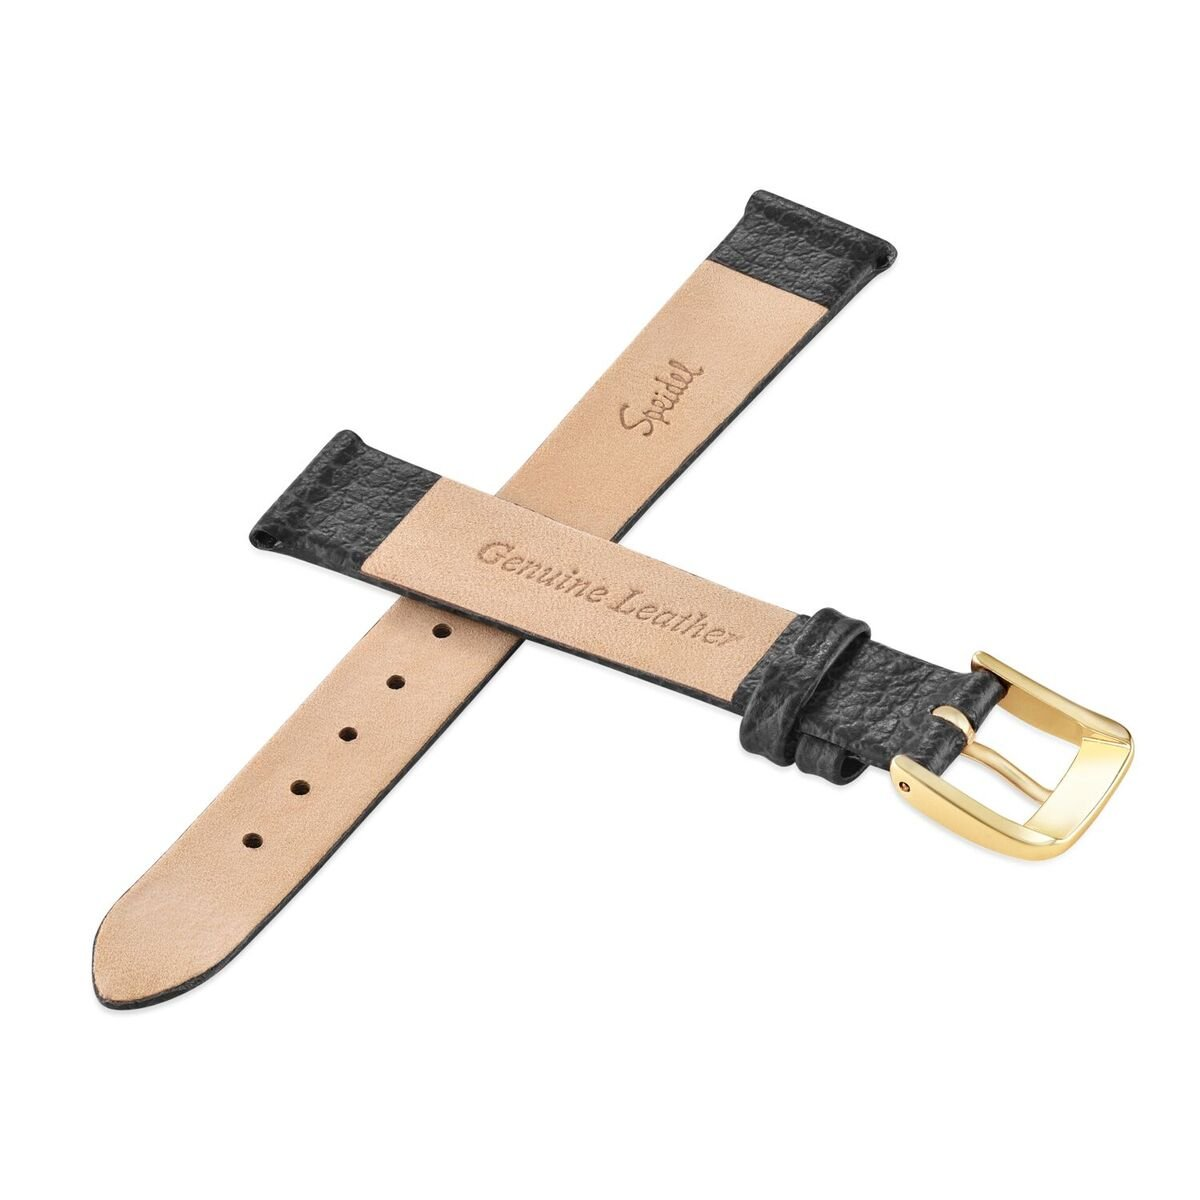 Speidel Genuine Leather Watch Band 12mm Black Fine Cowhide Replacement Strap, Stainless Steel Metal Buckle Clasp, Watchband Fits Most Watch Brands by Speidel (Image #3)